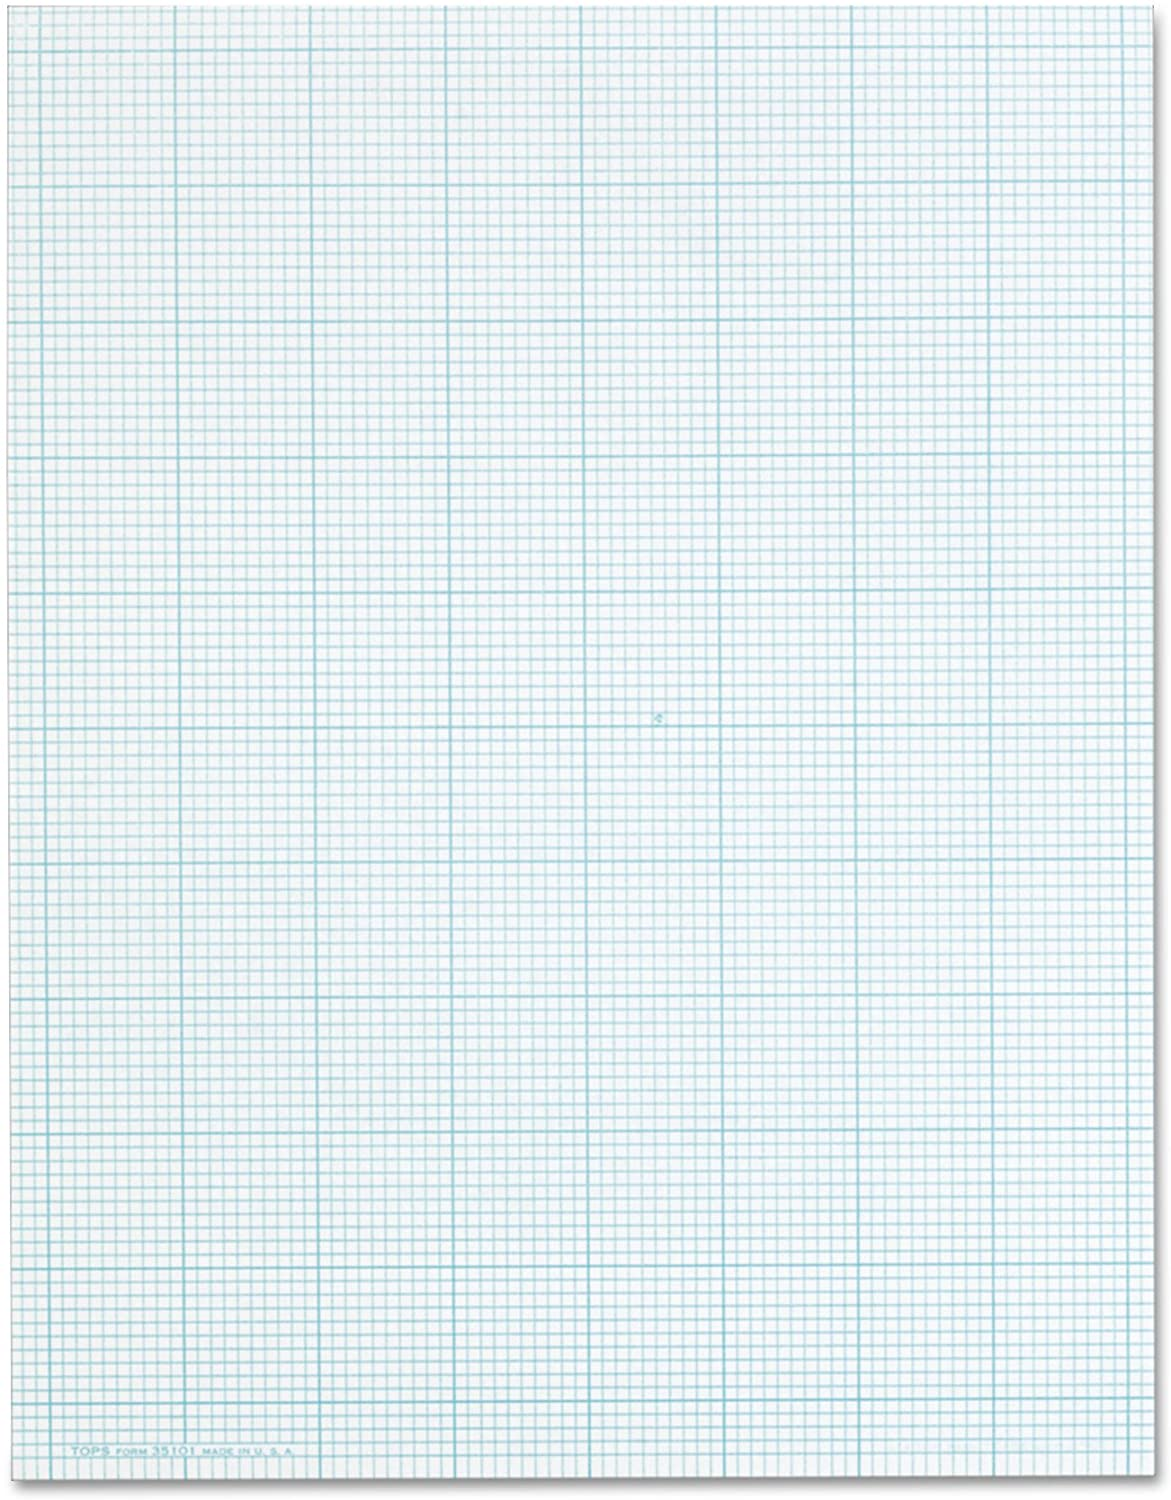 Best Graph Paper For Drawing And Note Taking Artnews